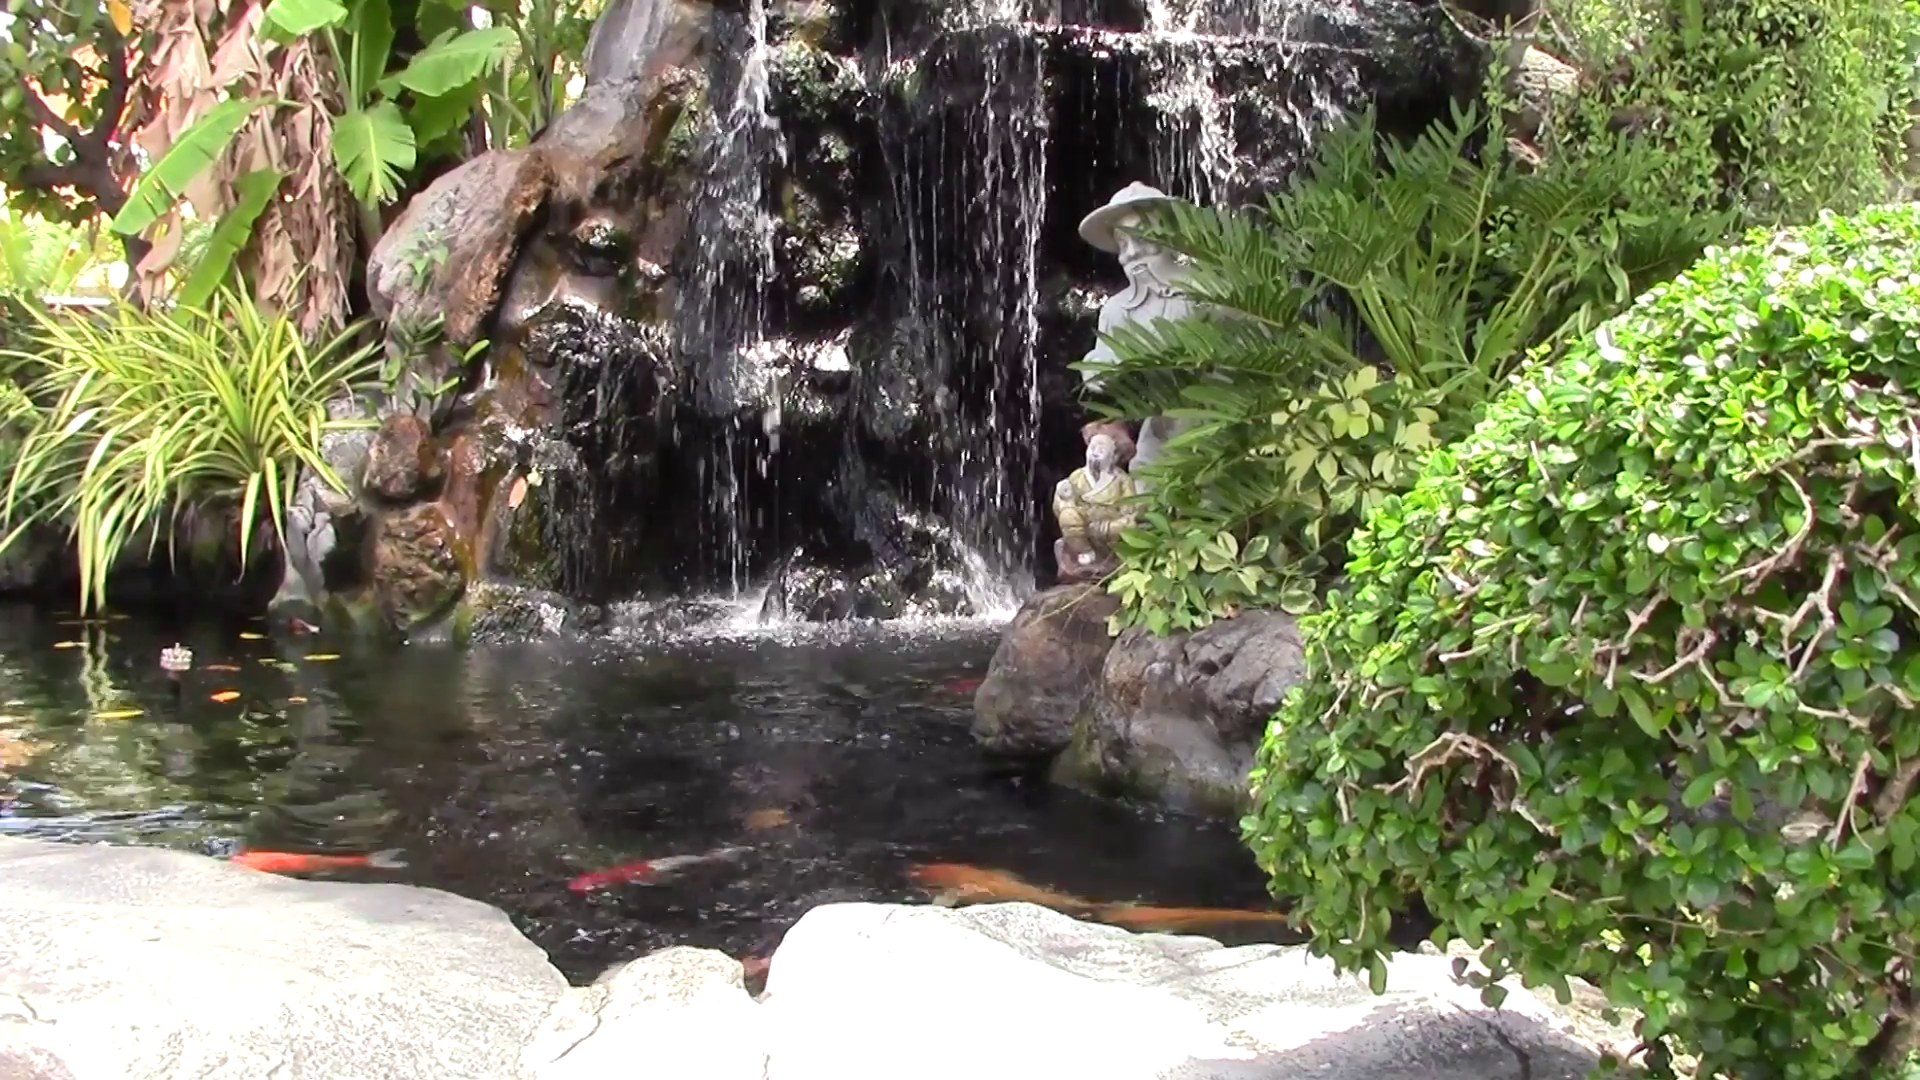 Colorful Video With Asian Garden Waterfall And Pond With Asian Garden Garden Waterfall Waterfall